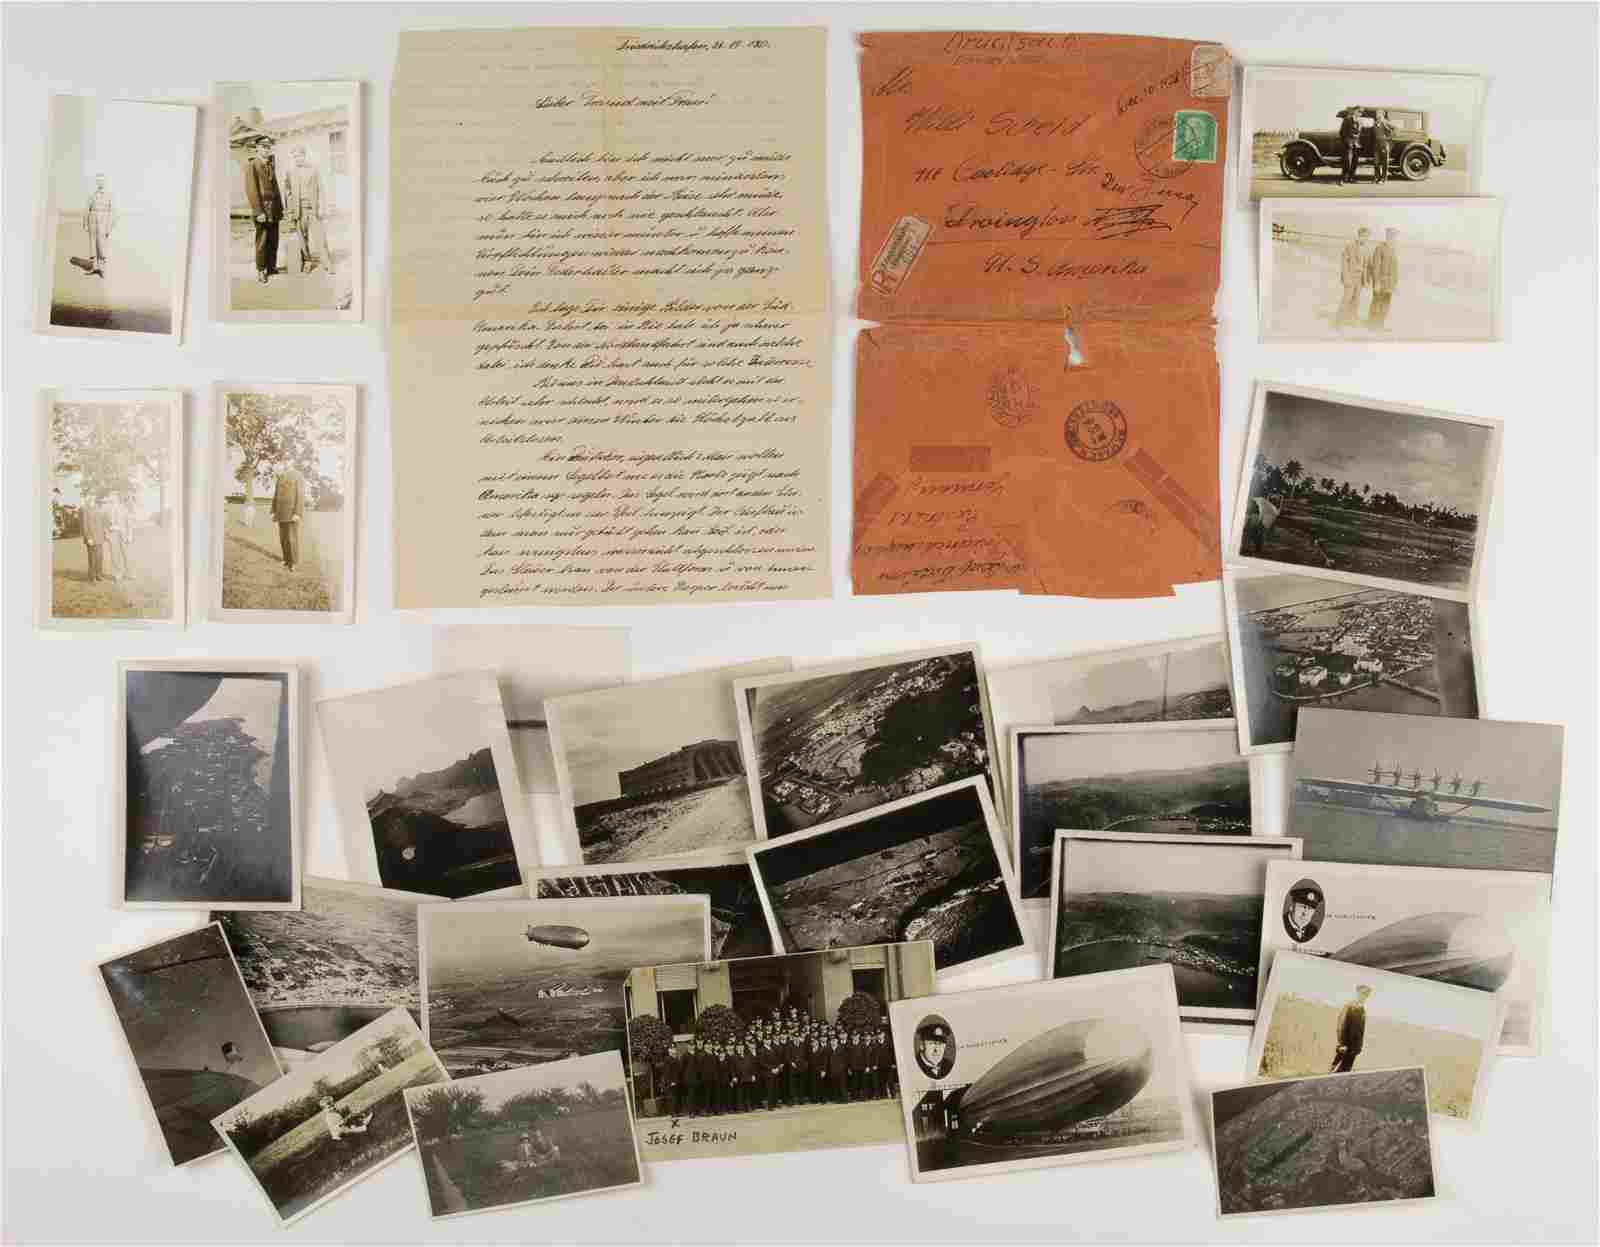 PHOTOGRAPH AND LETTER GROUPING FROM A GRAF ZEPPELIN